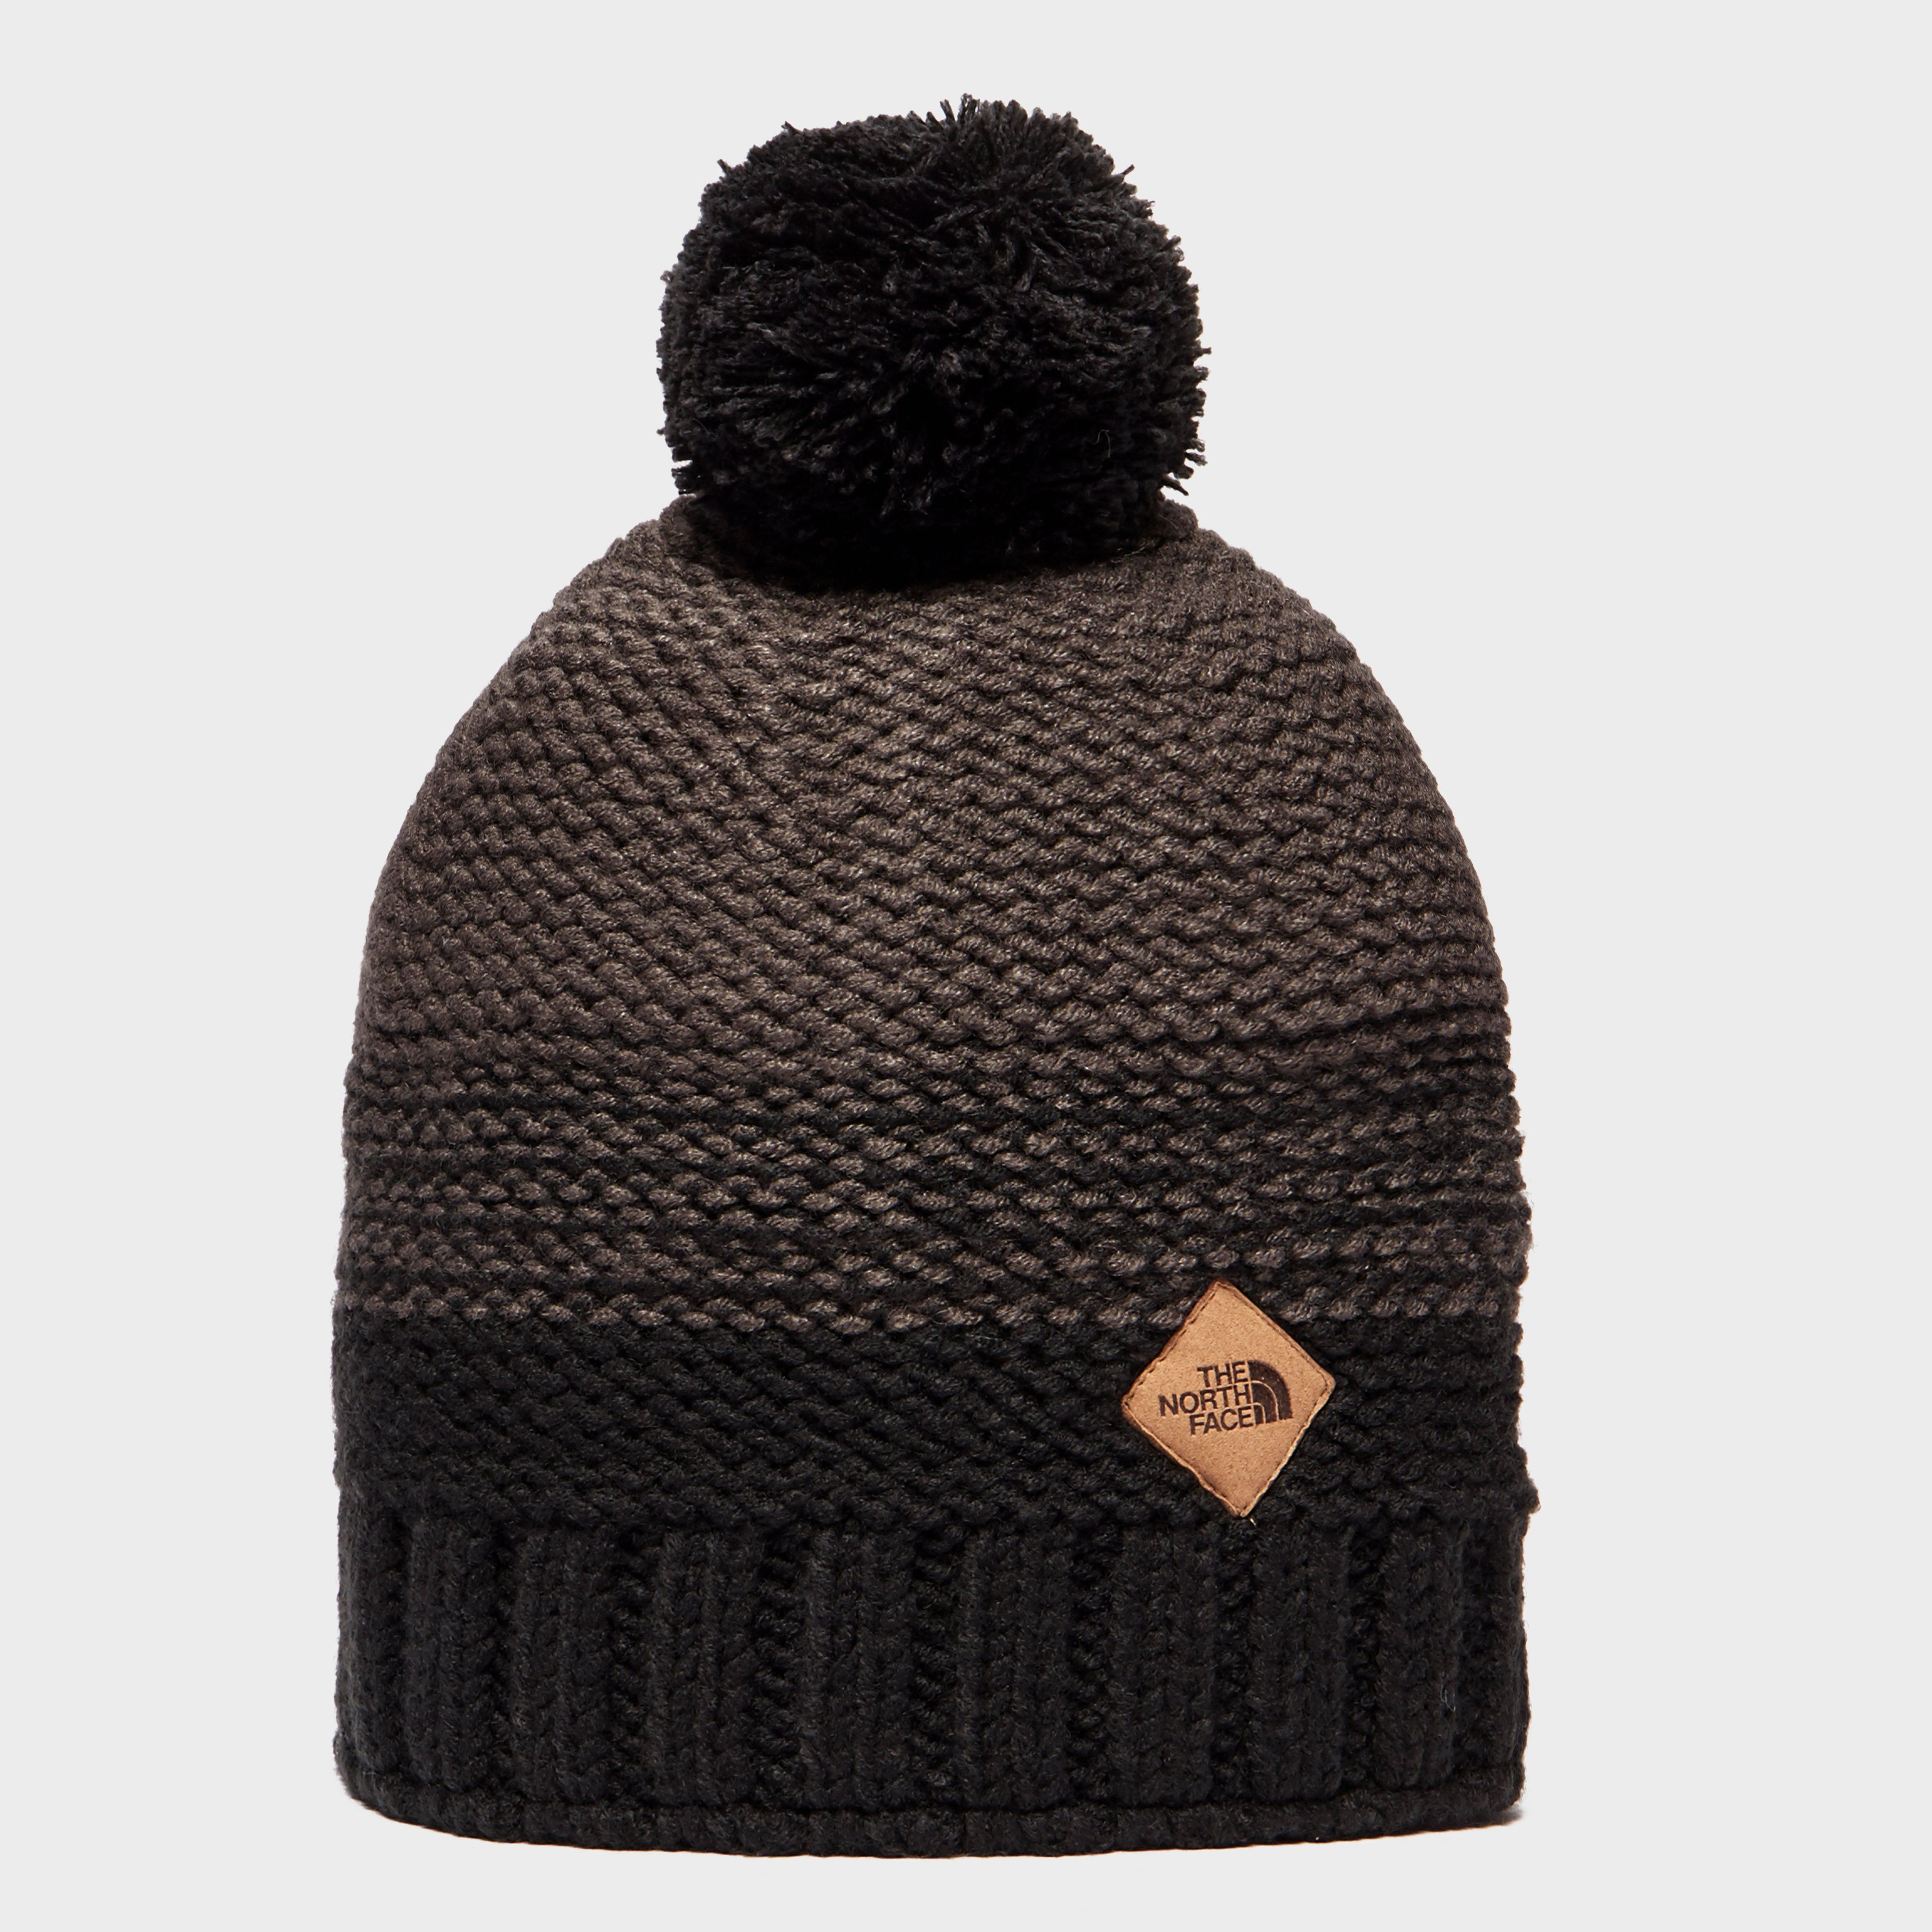 THE NORTH FACE Men's Antlers Beanie